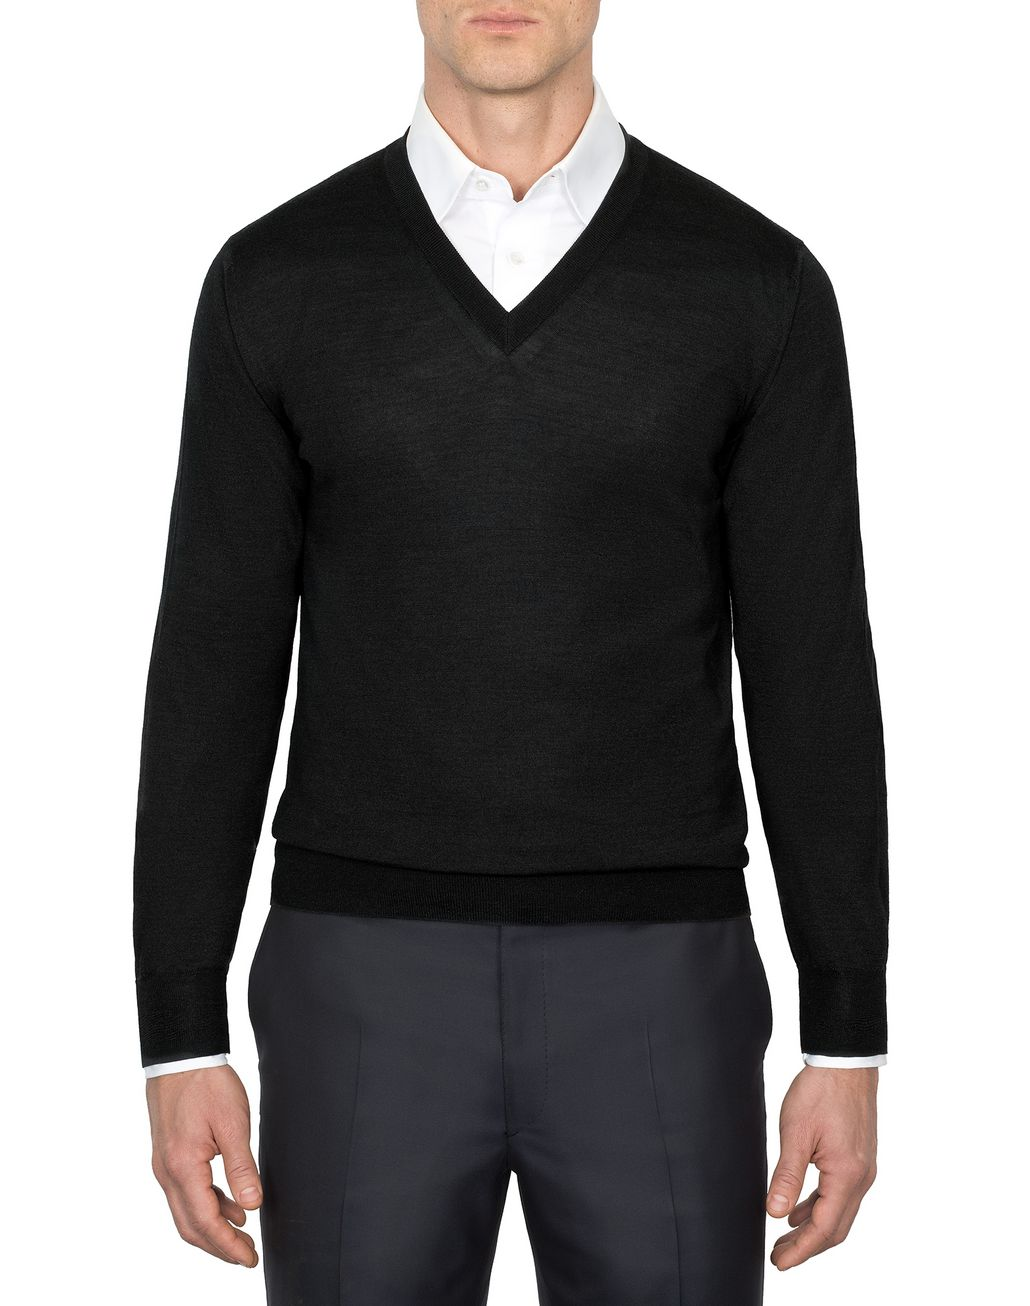 BRIONI 'Essential' Black V-Neck Sweater Knitwear [*** pickupInStoreShippingNotGuaranteed_info ***] r